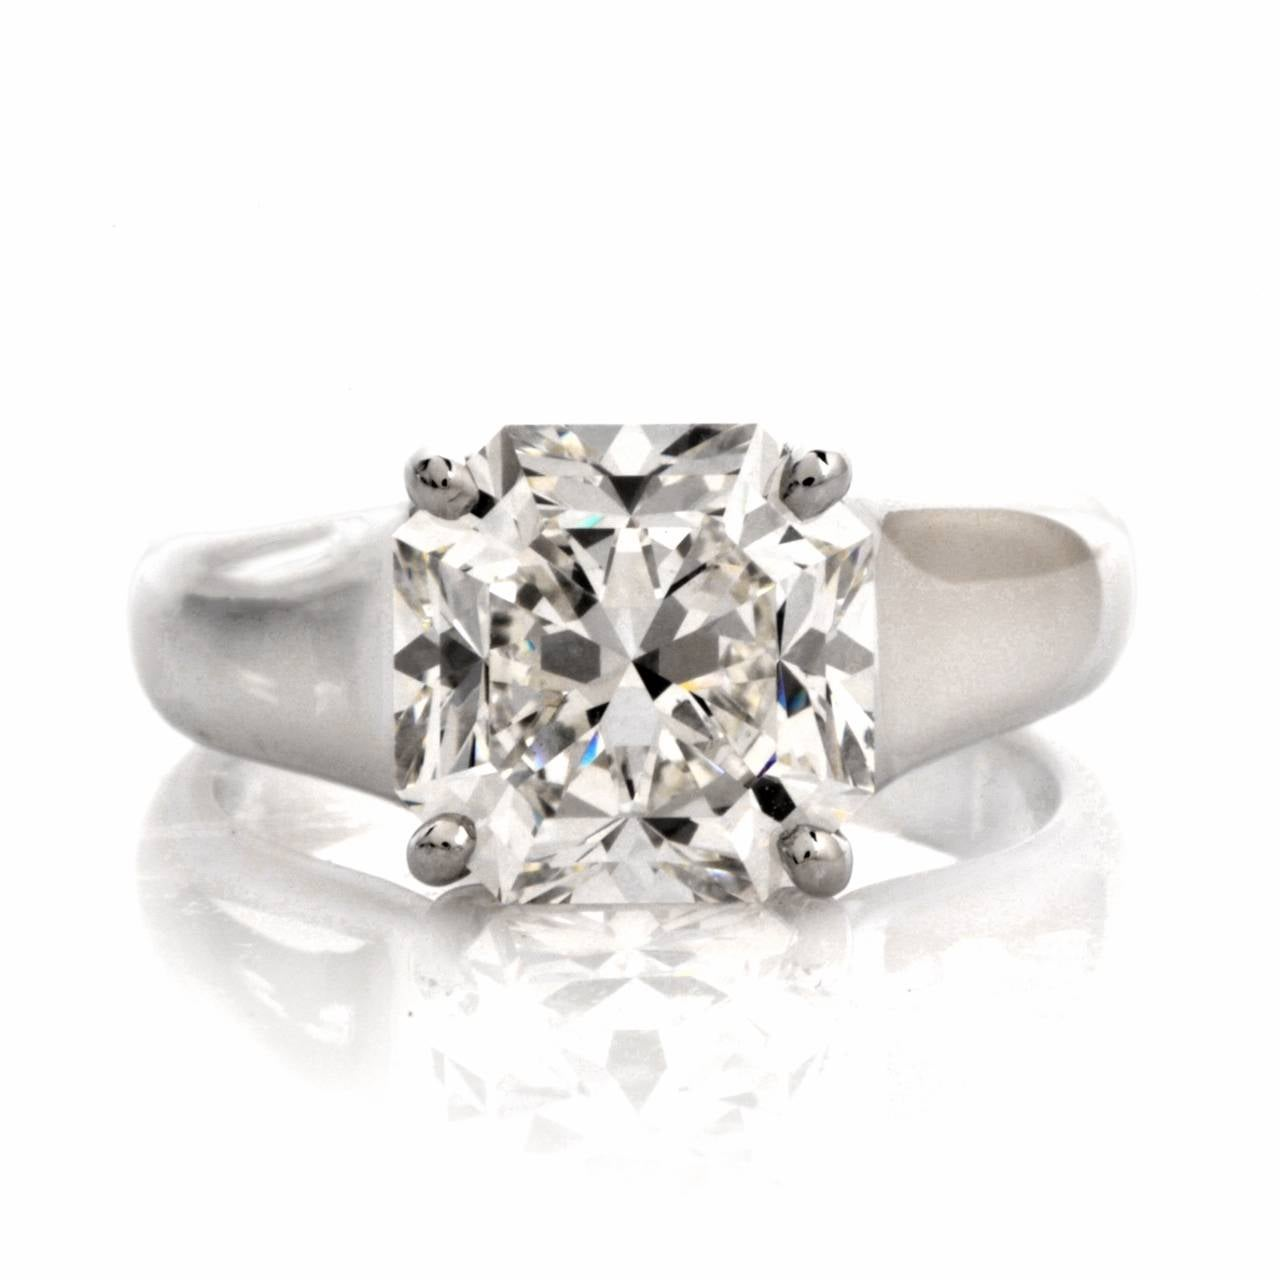 ring diamond synthetic lucida cushion cut sterling item classic gold diamonds white silver solid wedding solitaire